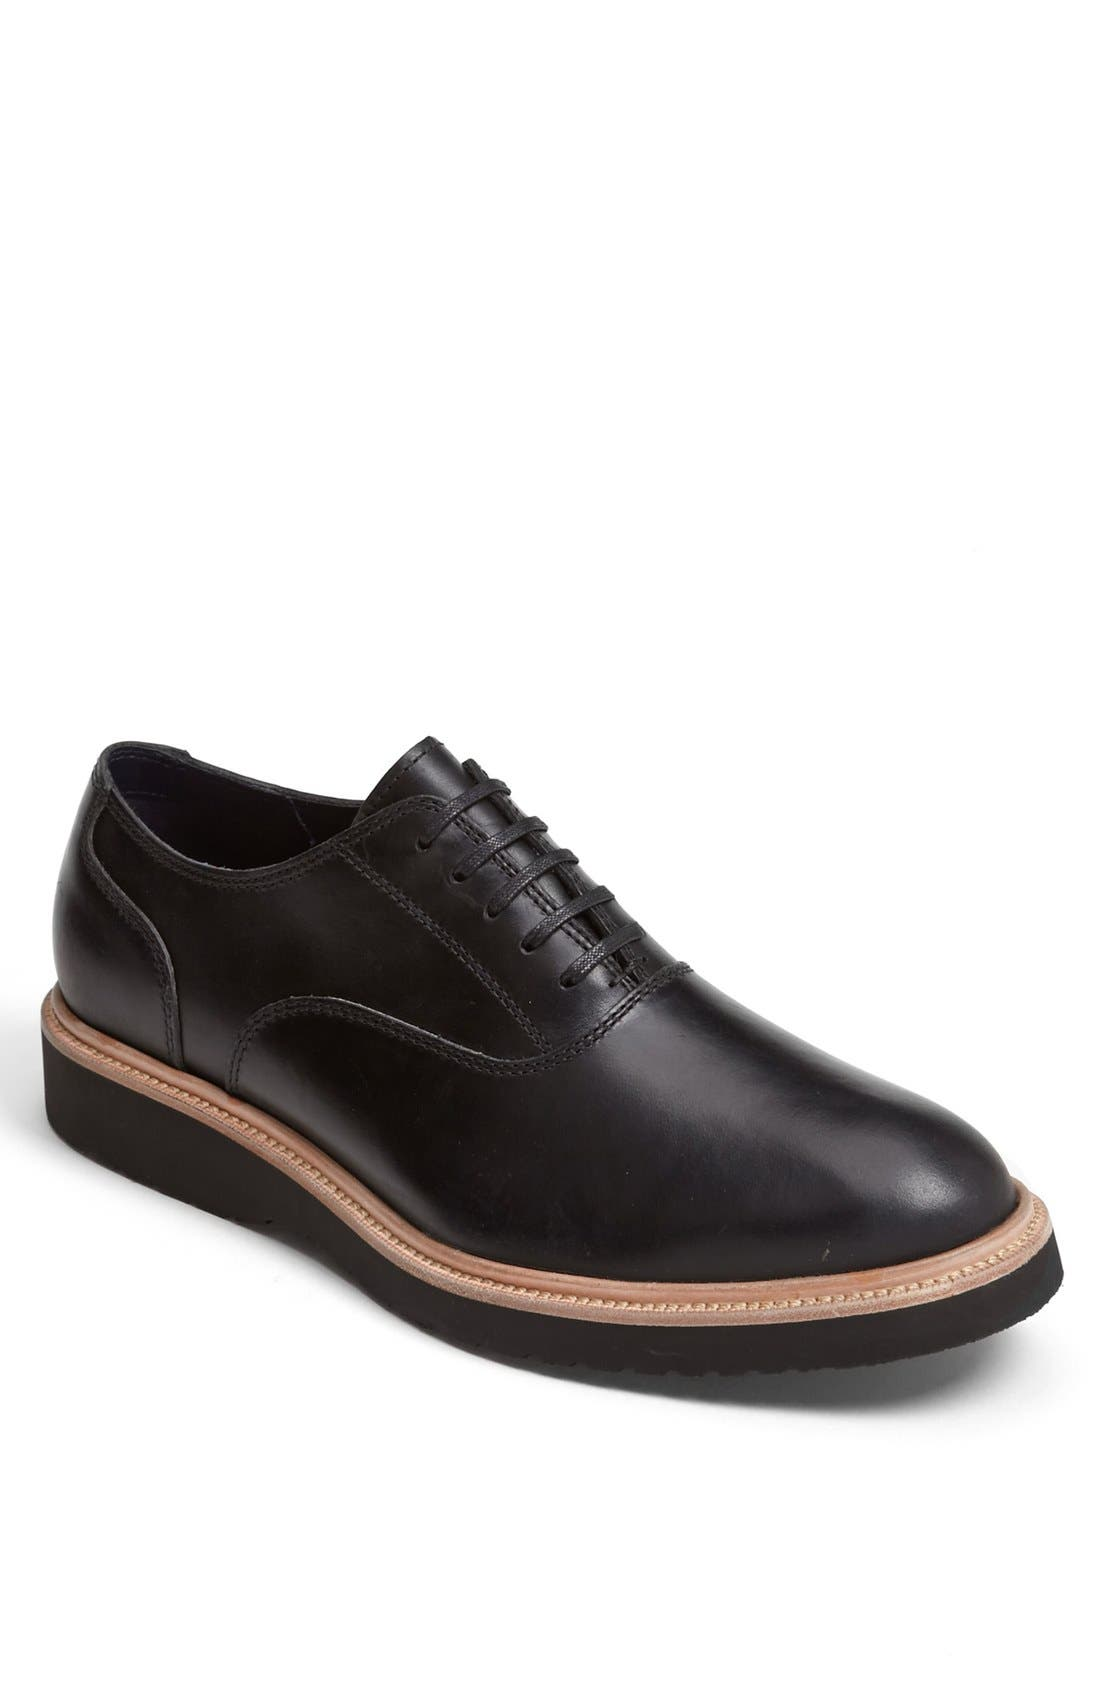 Alternate Image 1 Selected - Cole Haan 'Martin' Plain Toe Oxford